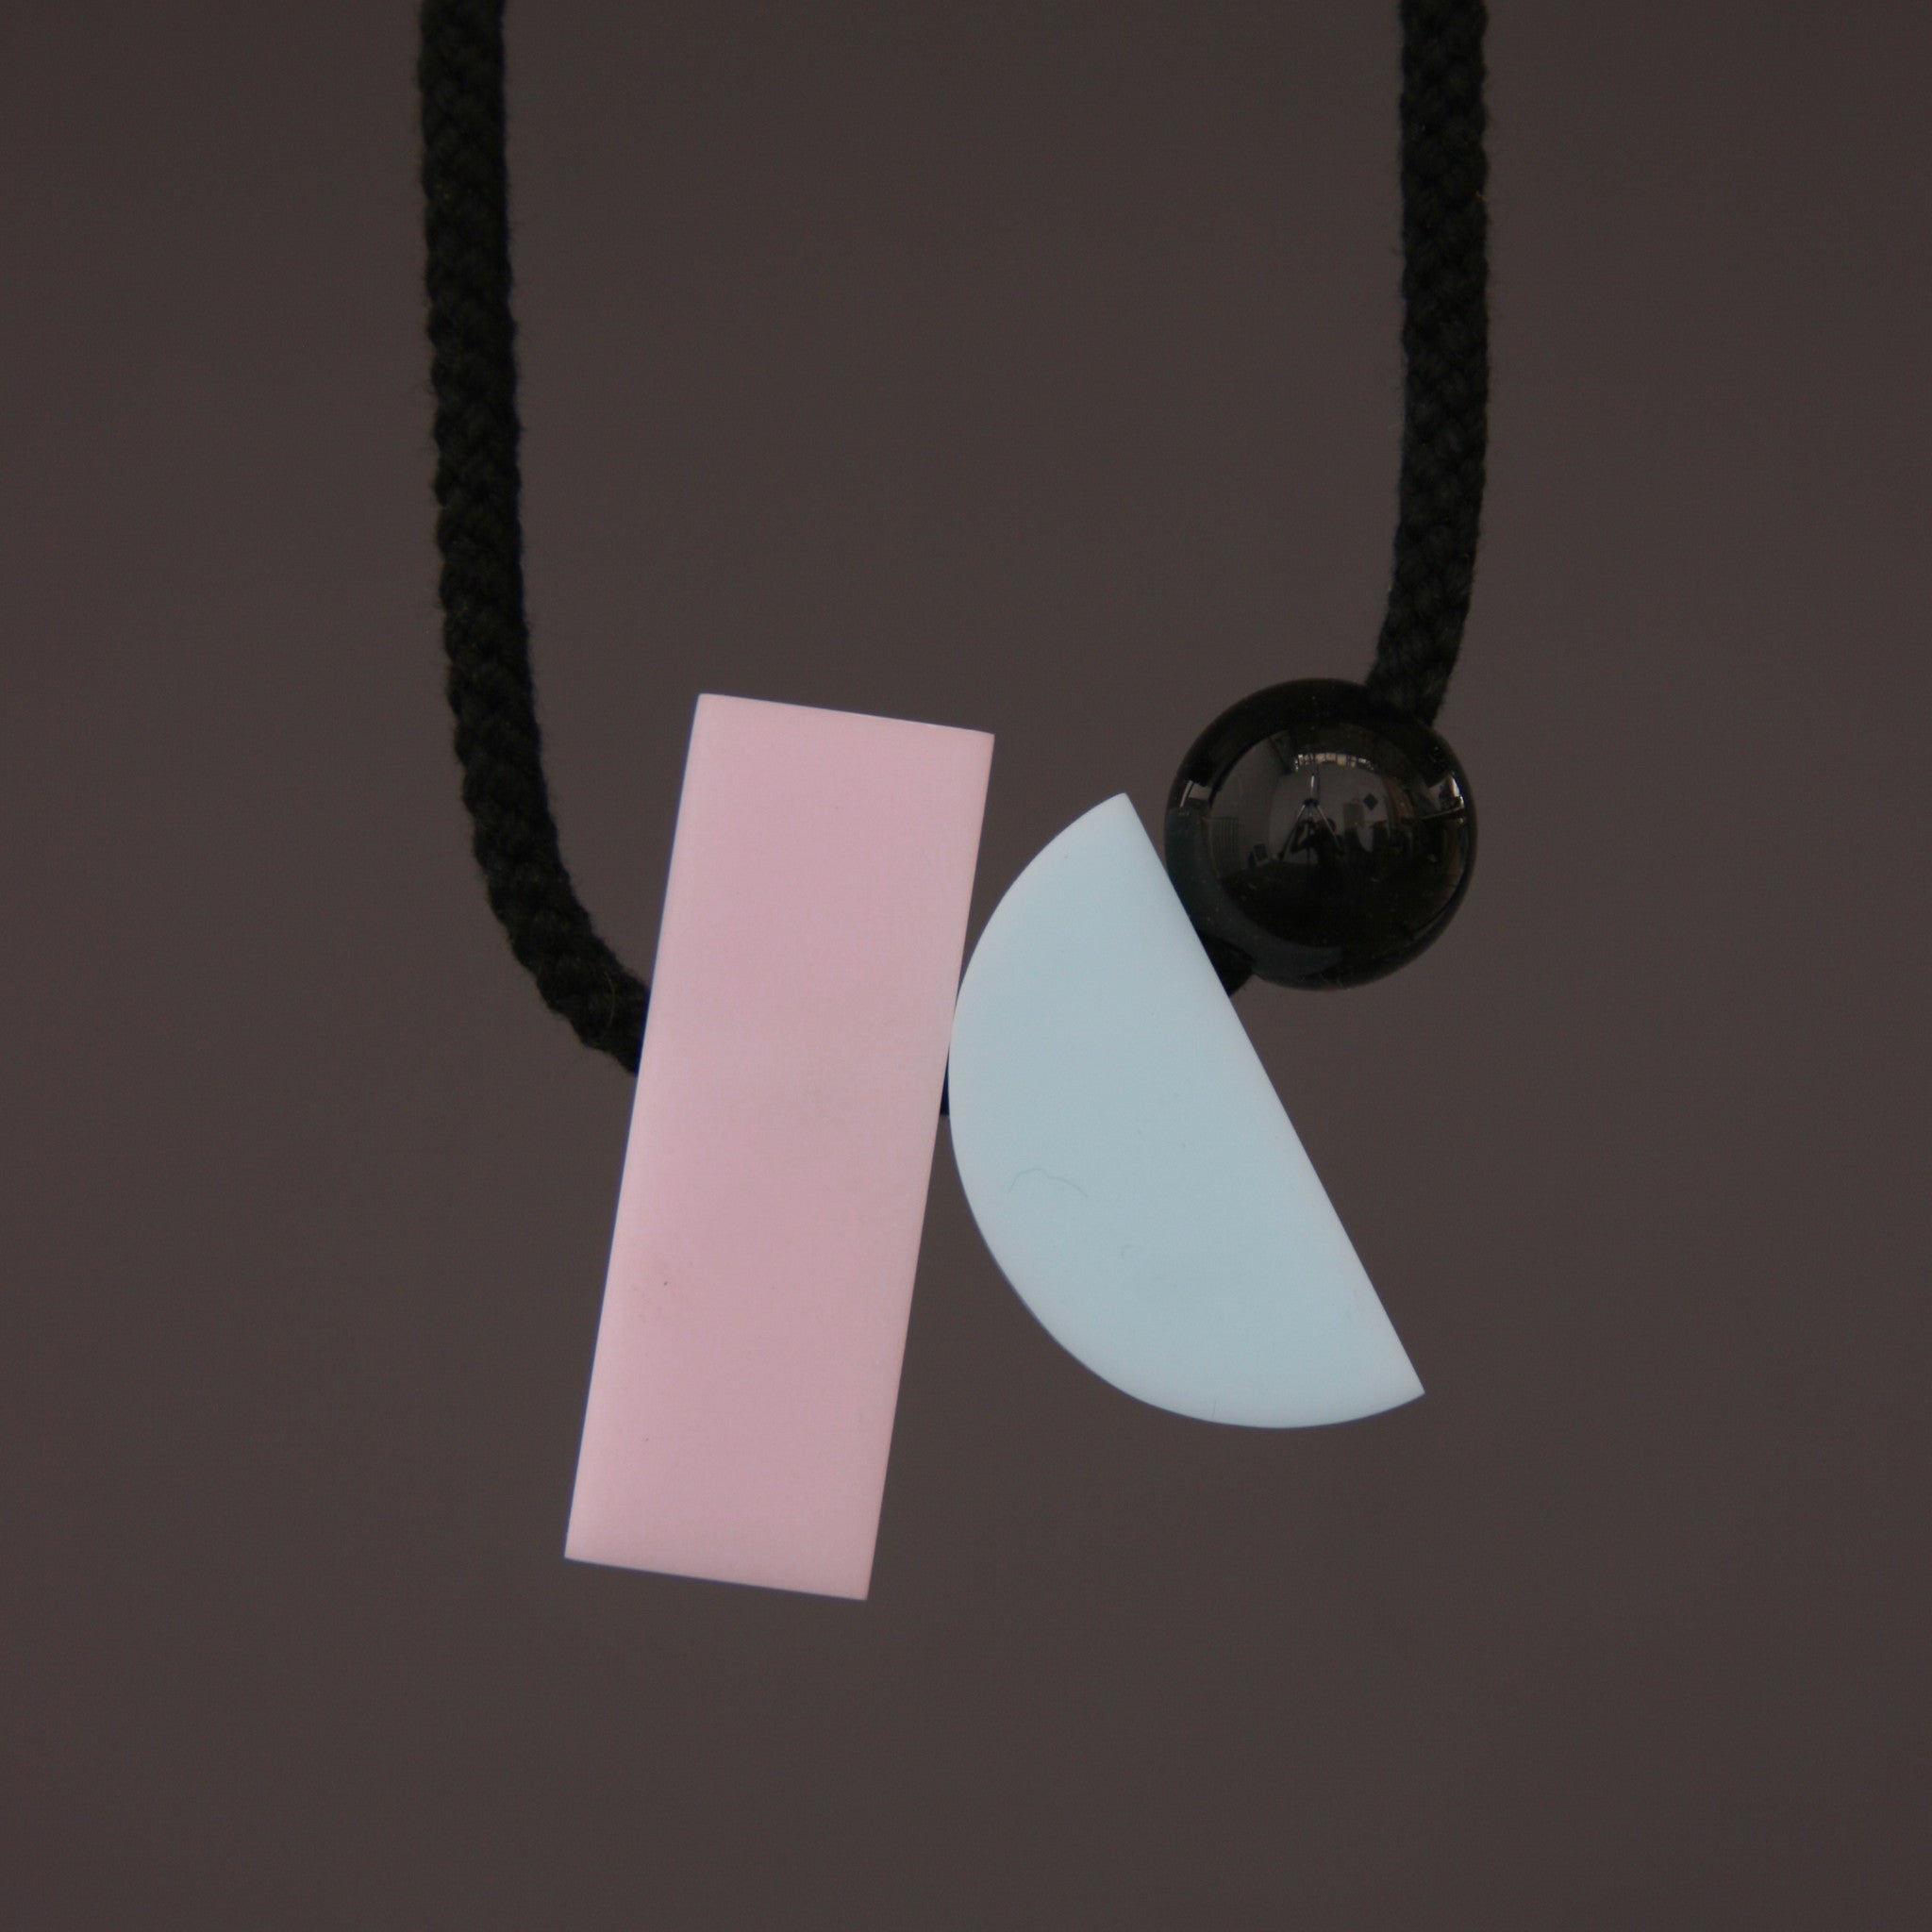 Dora is a fresh minimal and stylish necklace. The pastel colours and geometric shapes look great against a simple top. It hangs really nicely. Dora is composed of 3 parts. A pink rectangular resin section (70mm x 23mm), a pale blue resin curve (50mm x 23mm) and a small black resin ball (25mm).